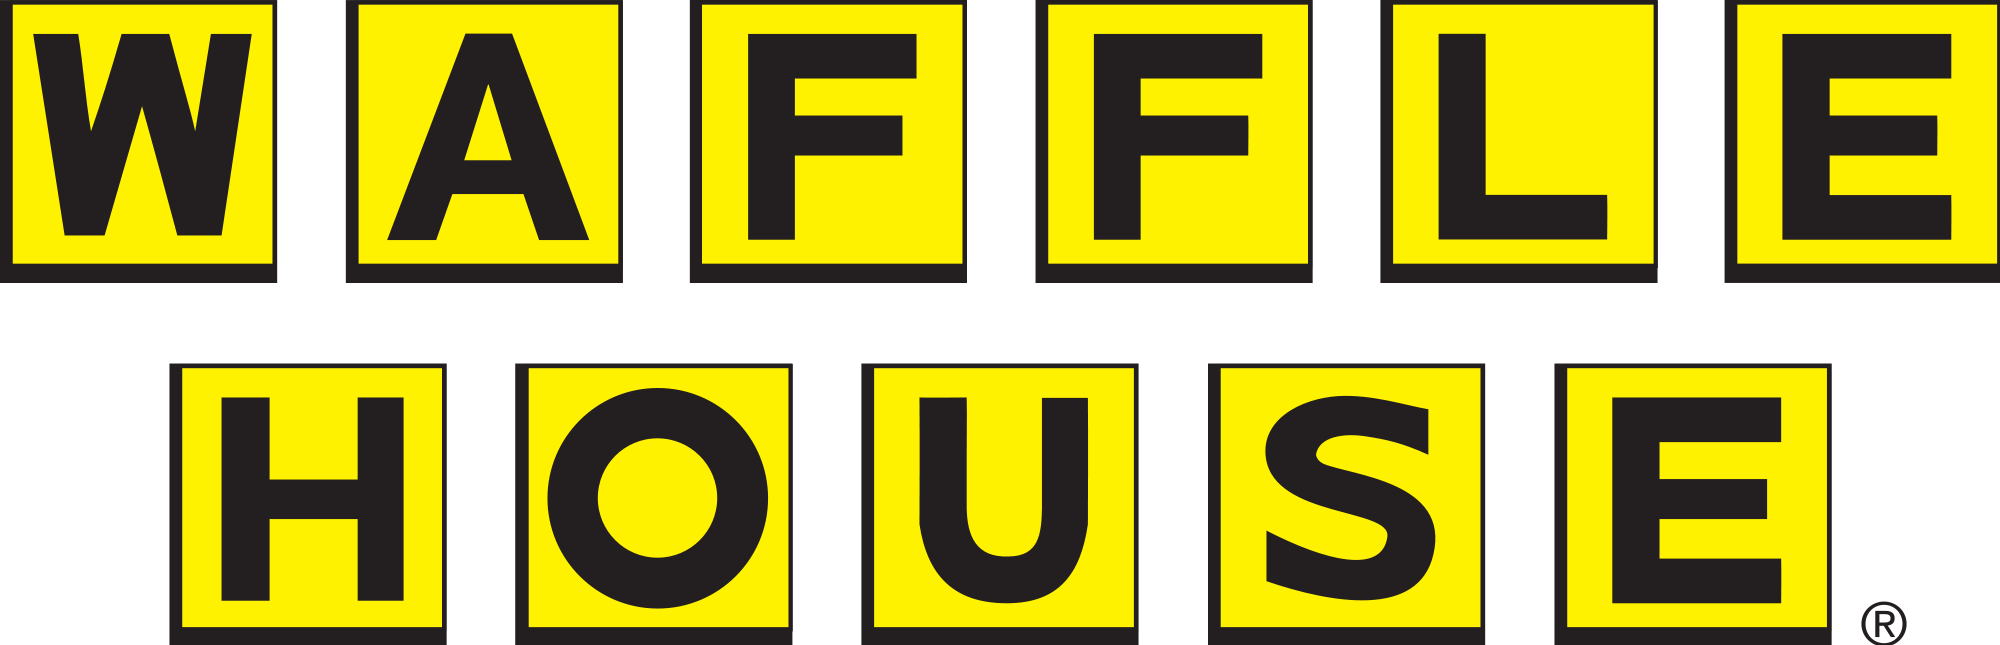 waffle house truck png